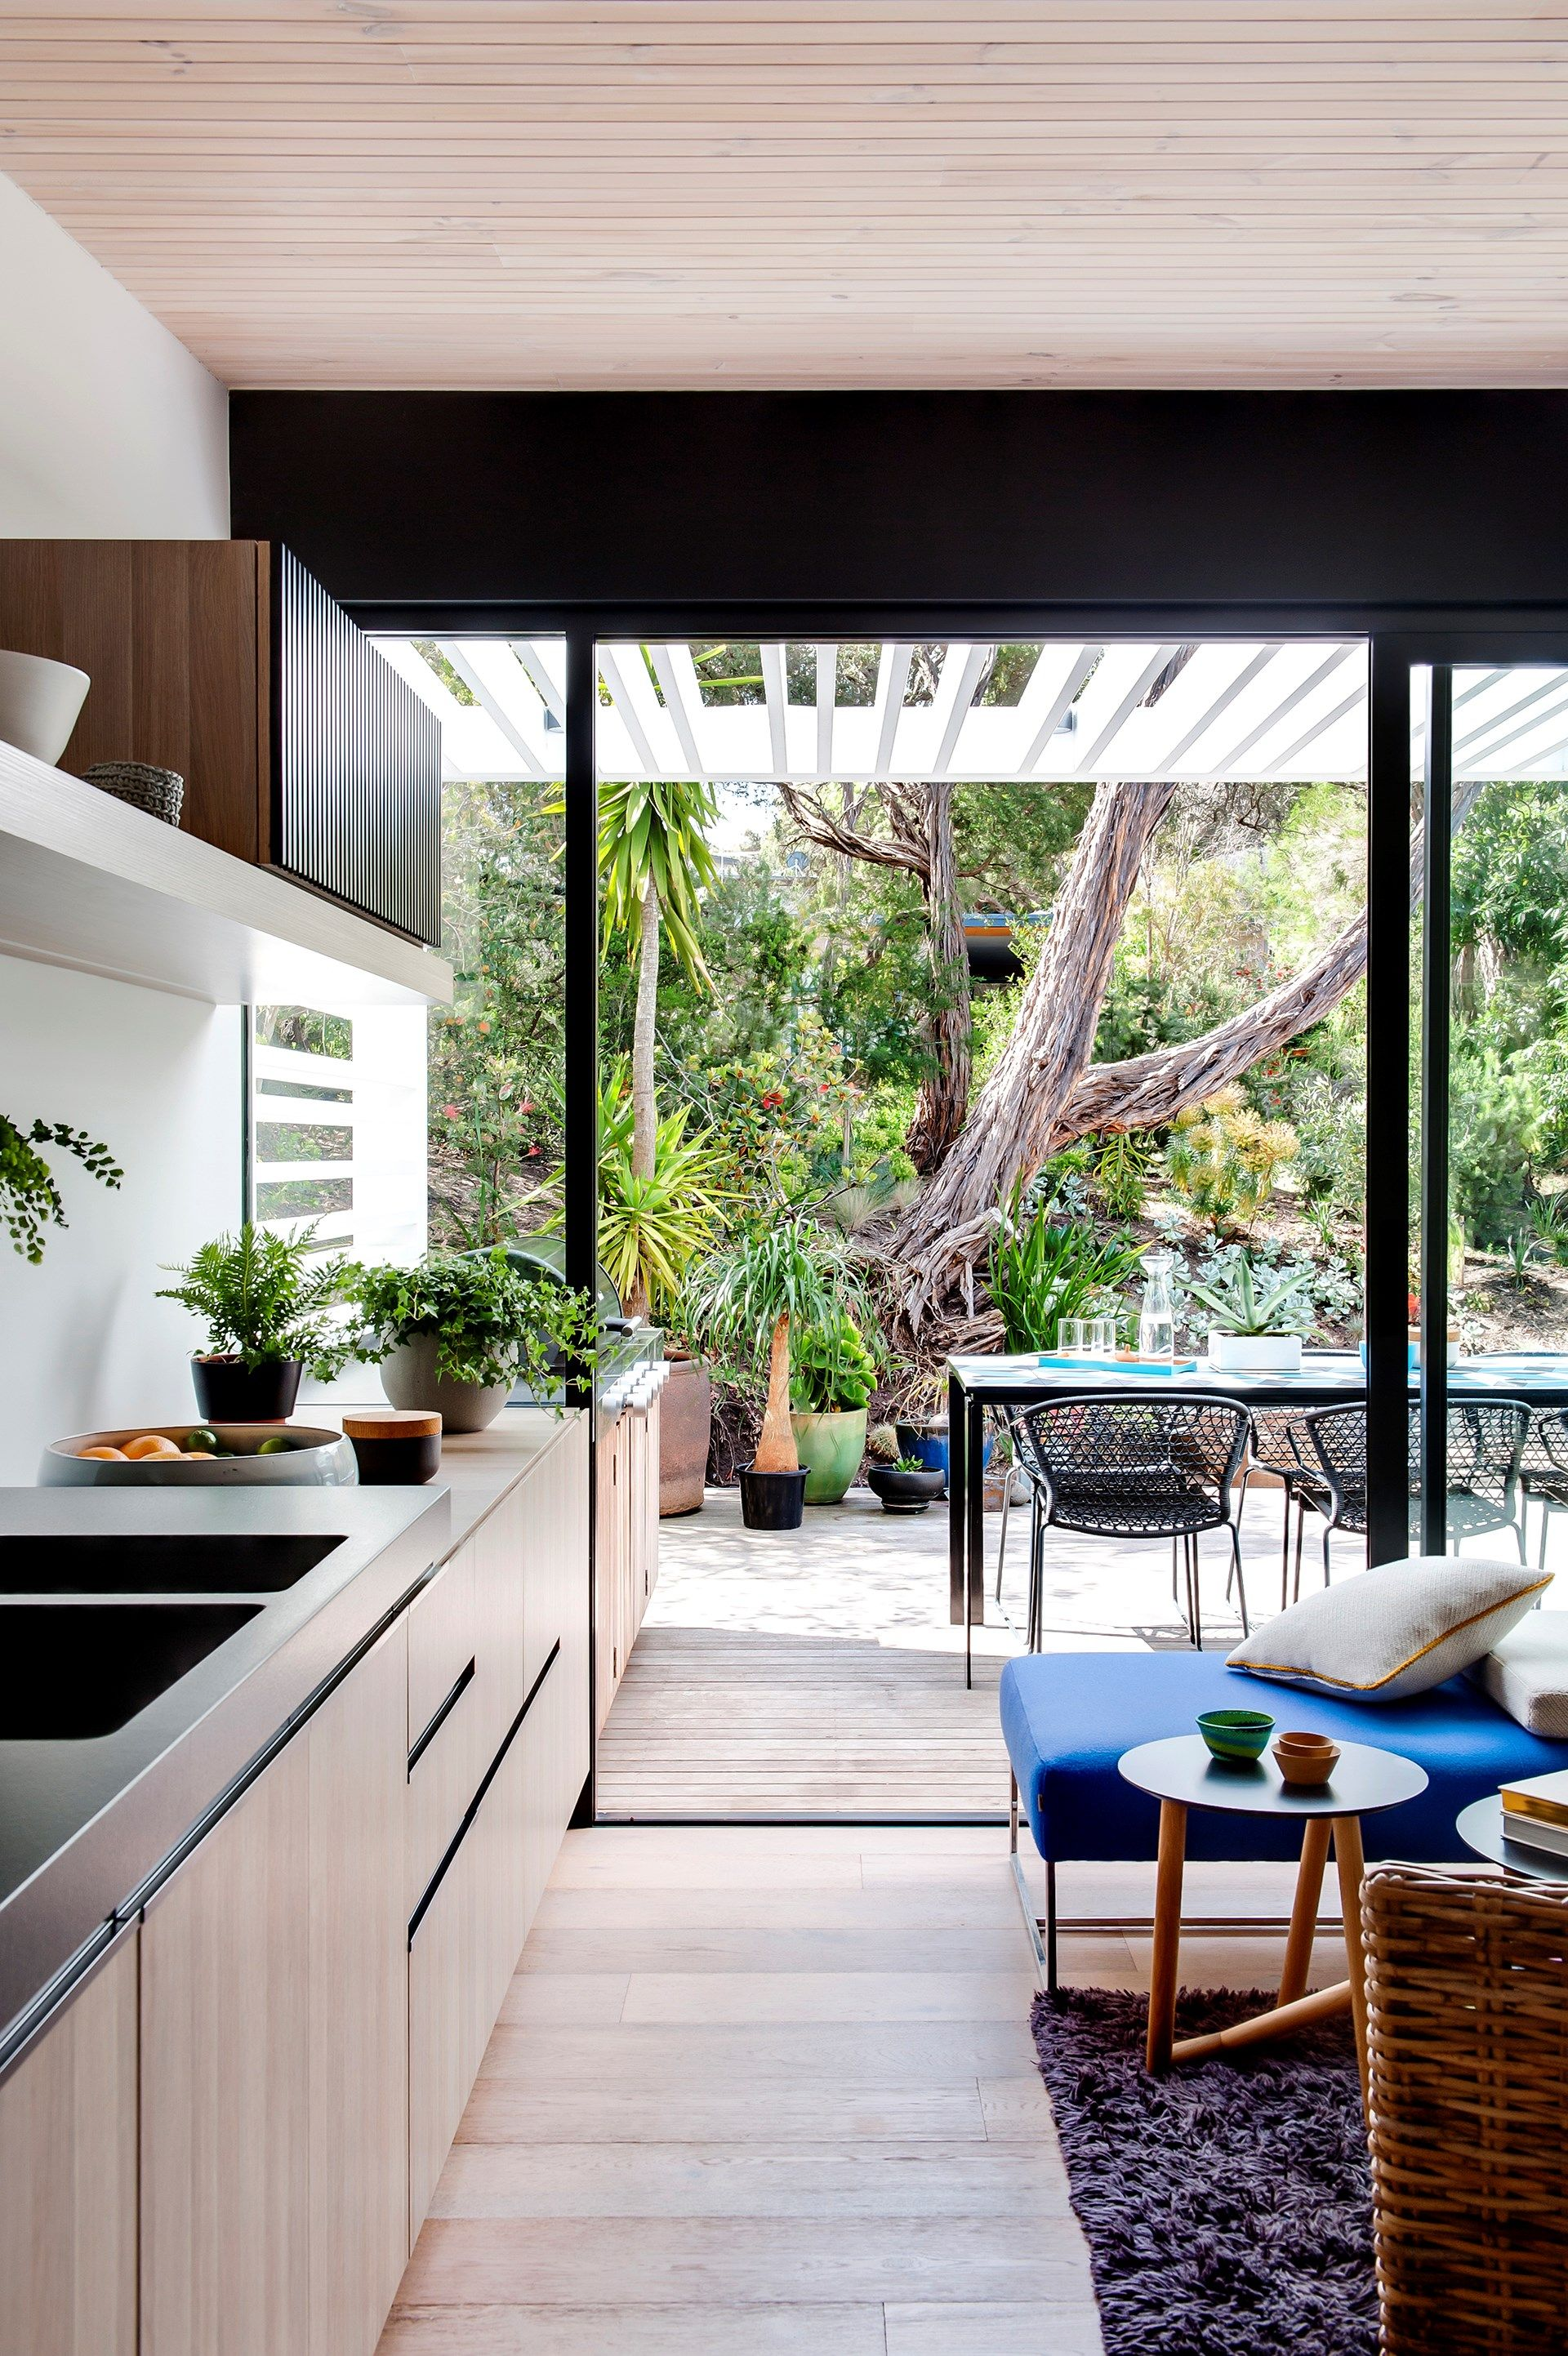 kitchen, wooden floor, wooden cabinet, white wall, glass sliding door, dining table, blue bench